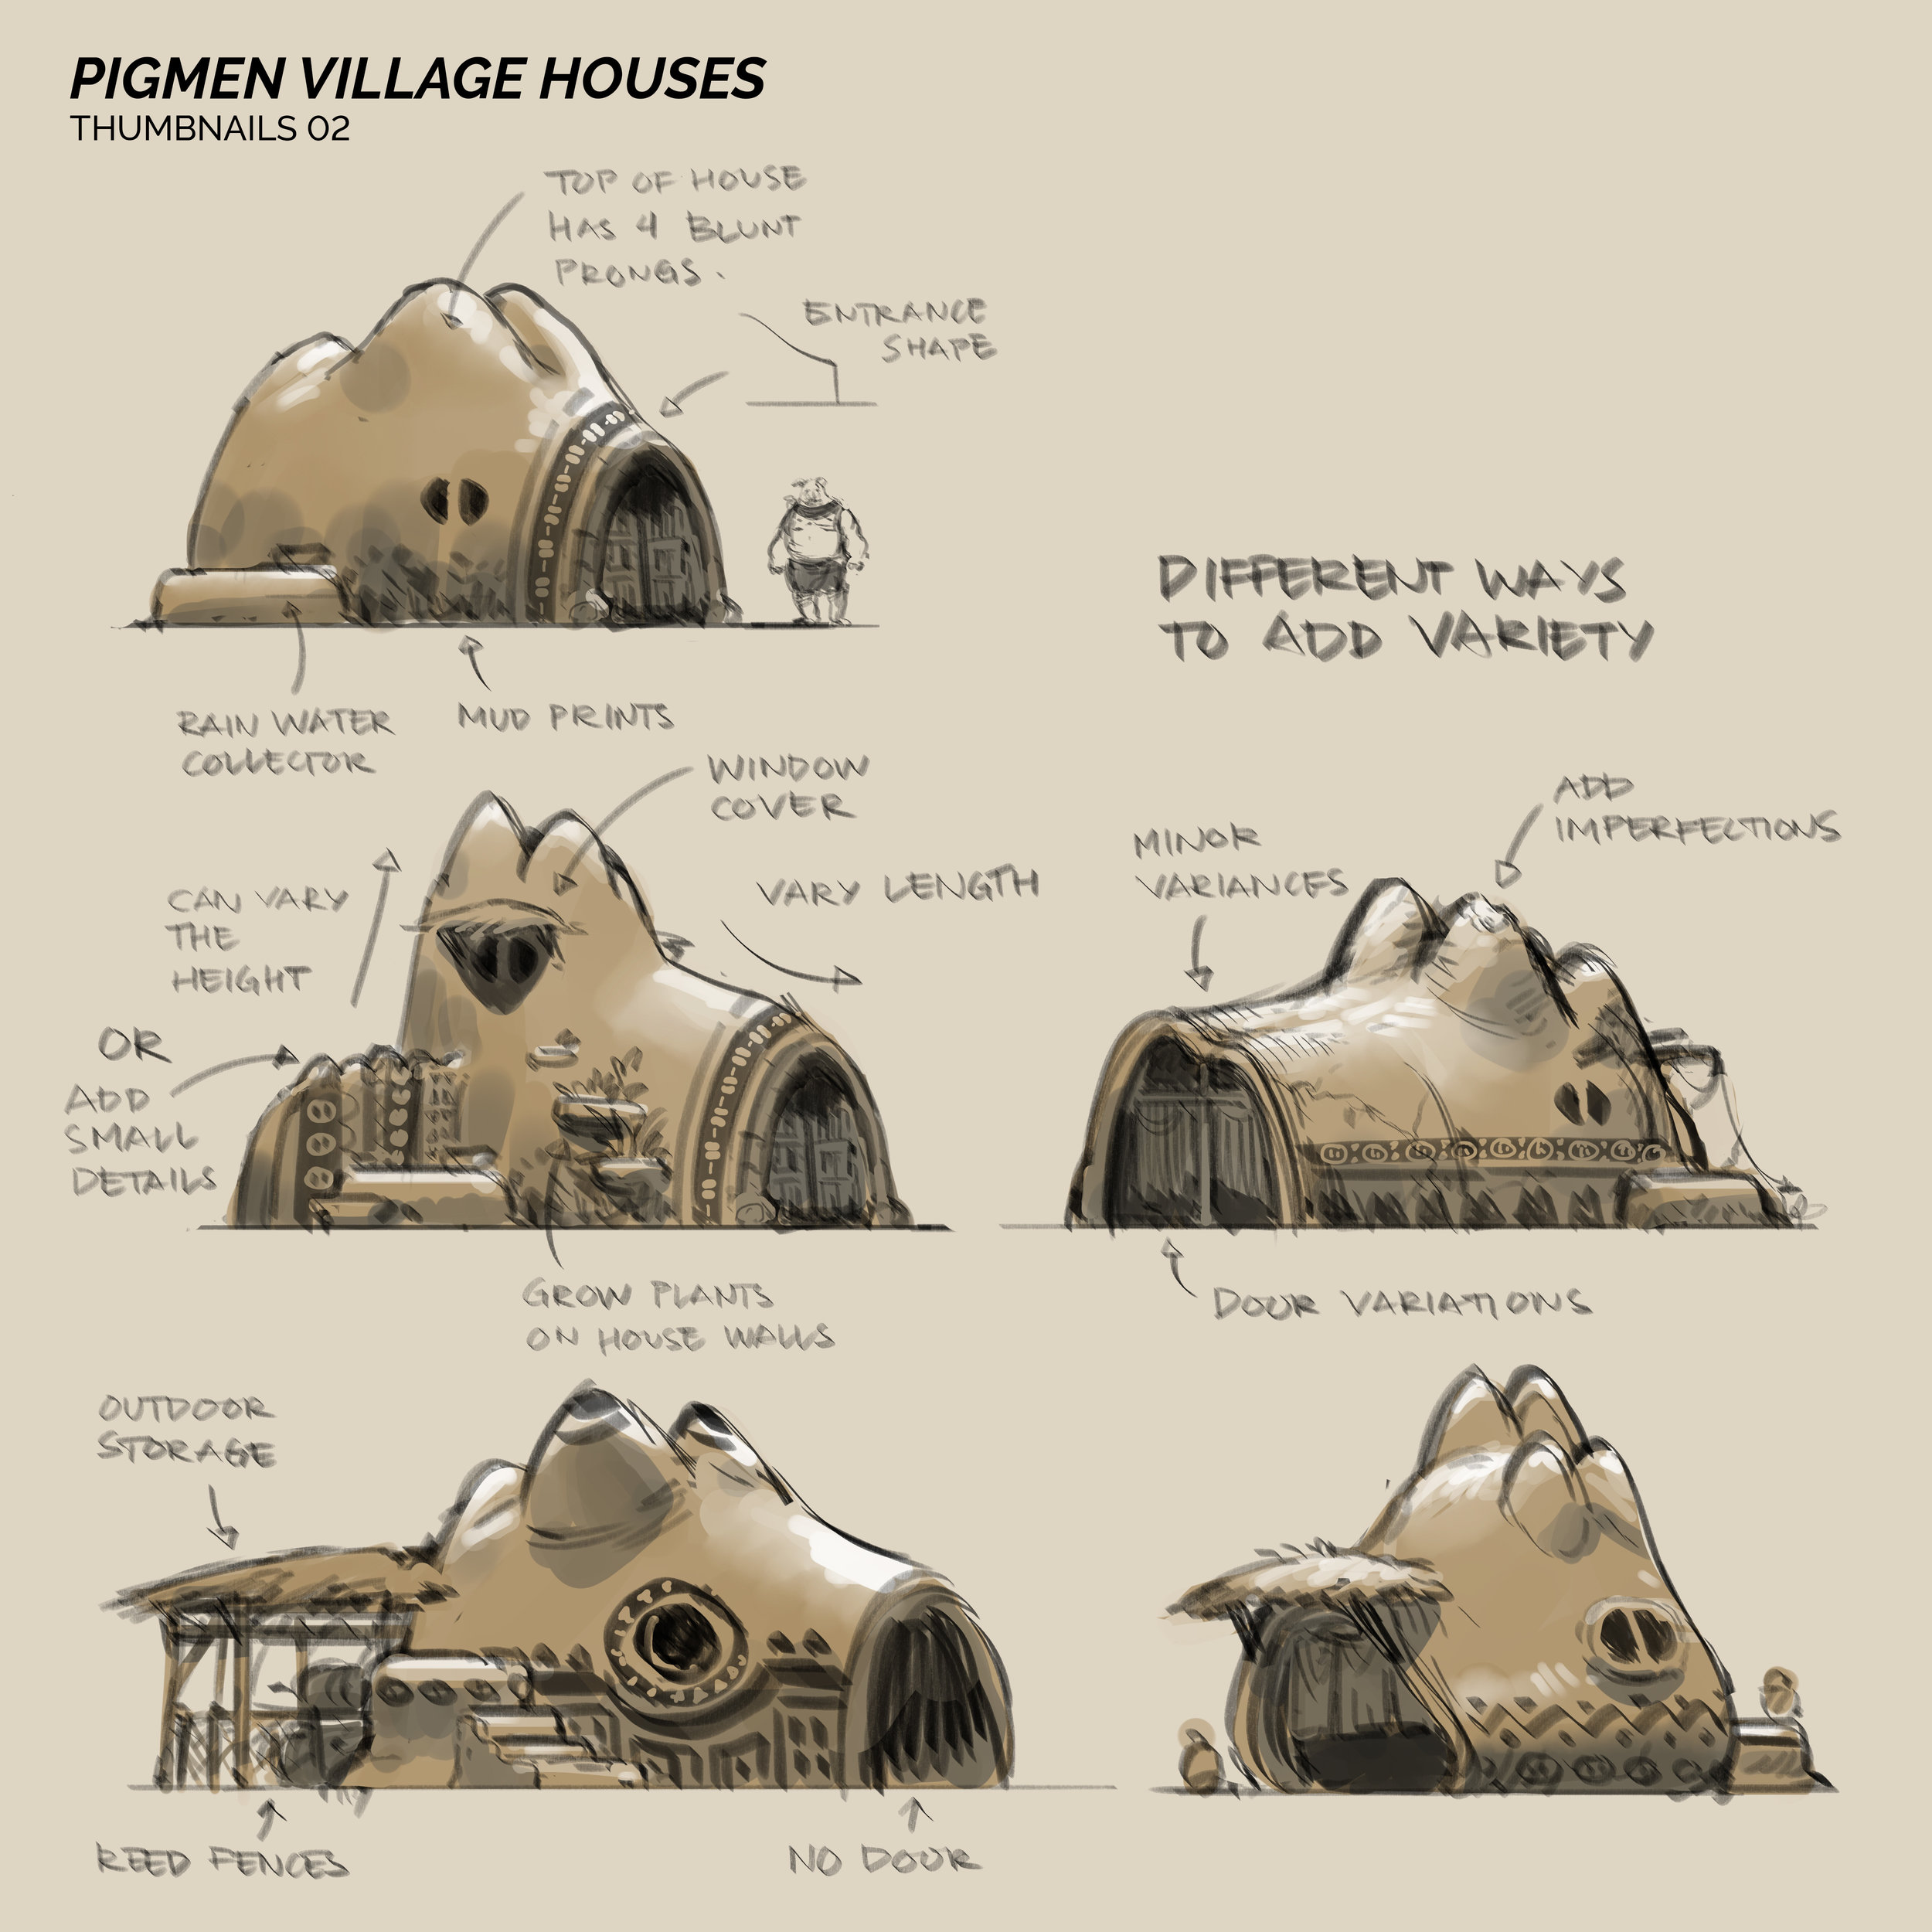 JTTW_PigVillage_House_Exploration_01_Thumbnails_02.jpg